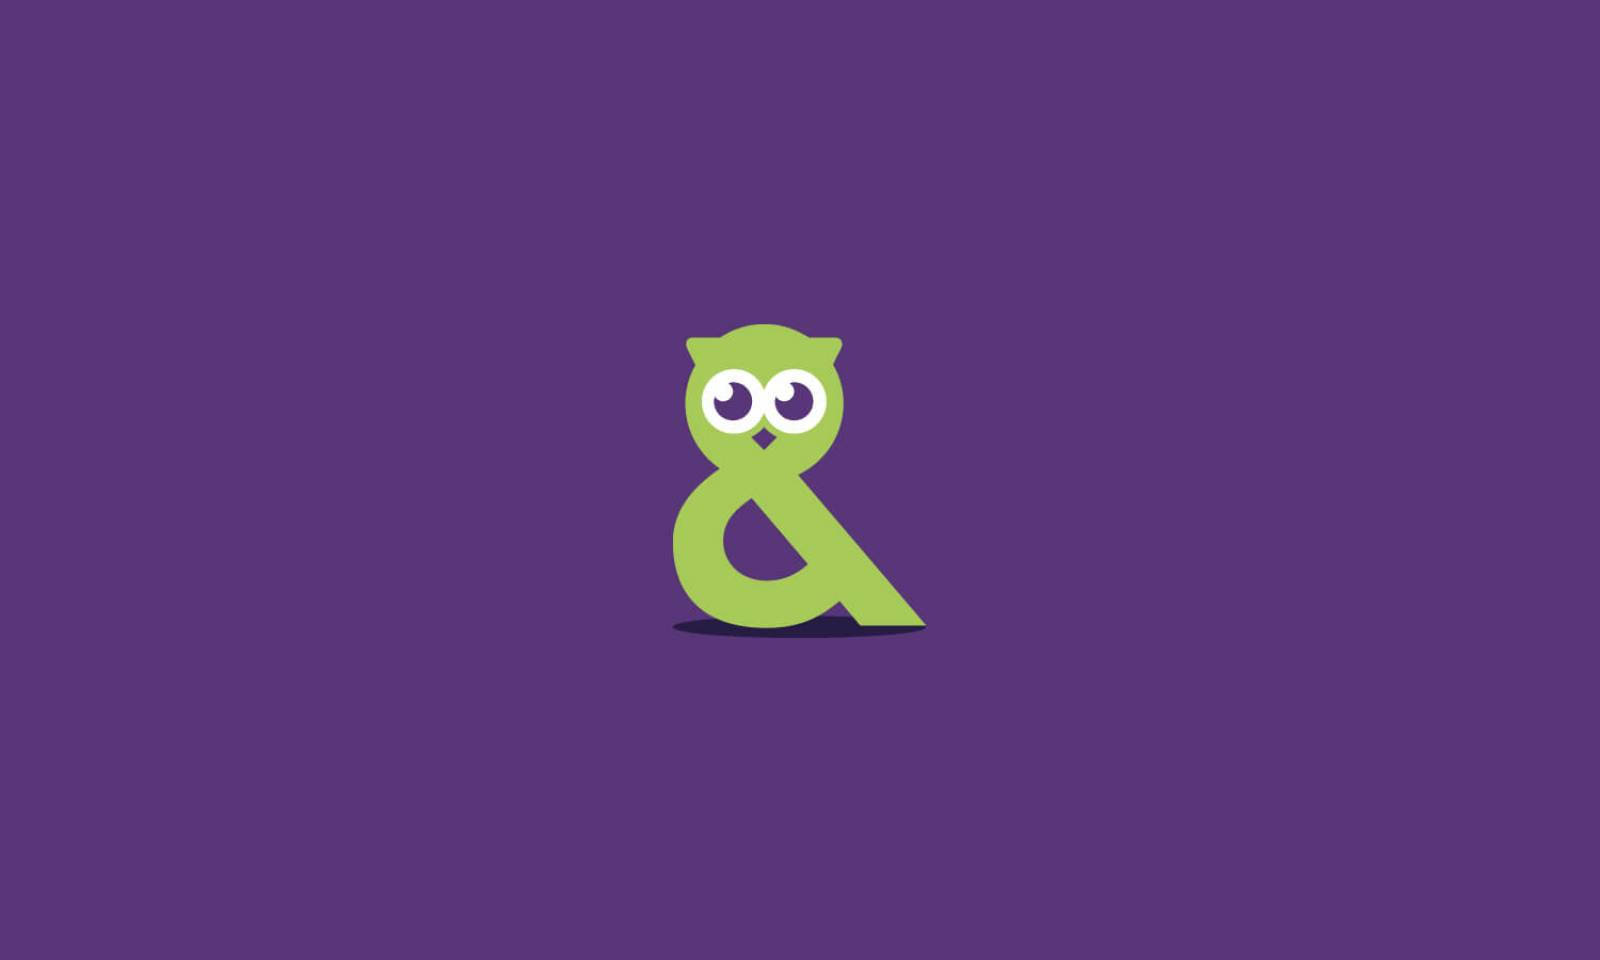 logo-Hoot-corporate-identity-agency-graphic-design-canterbury.jpg